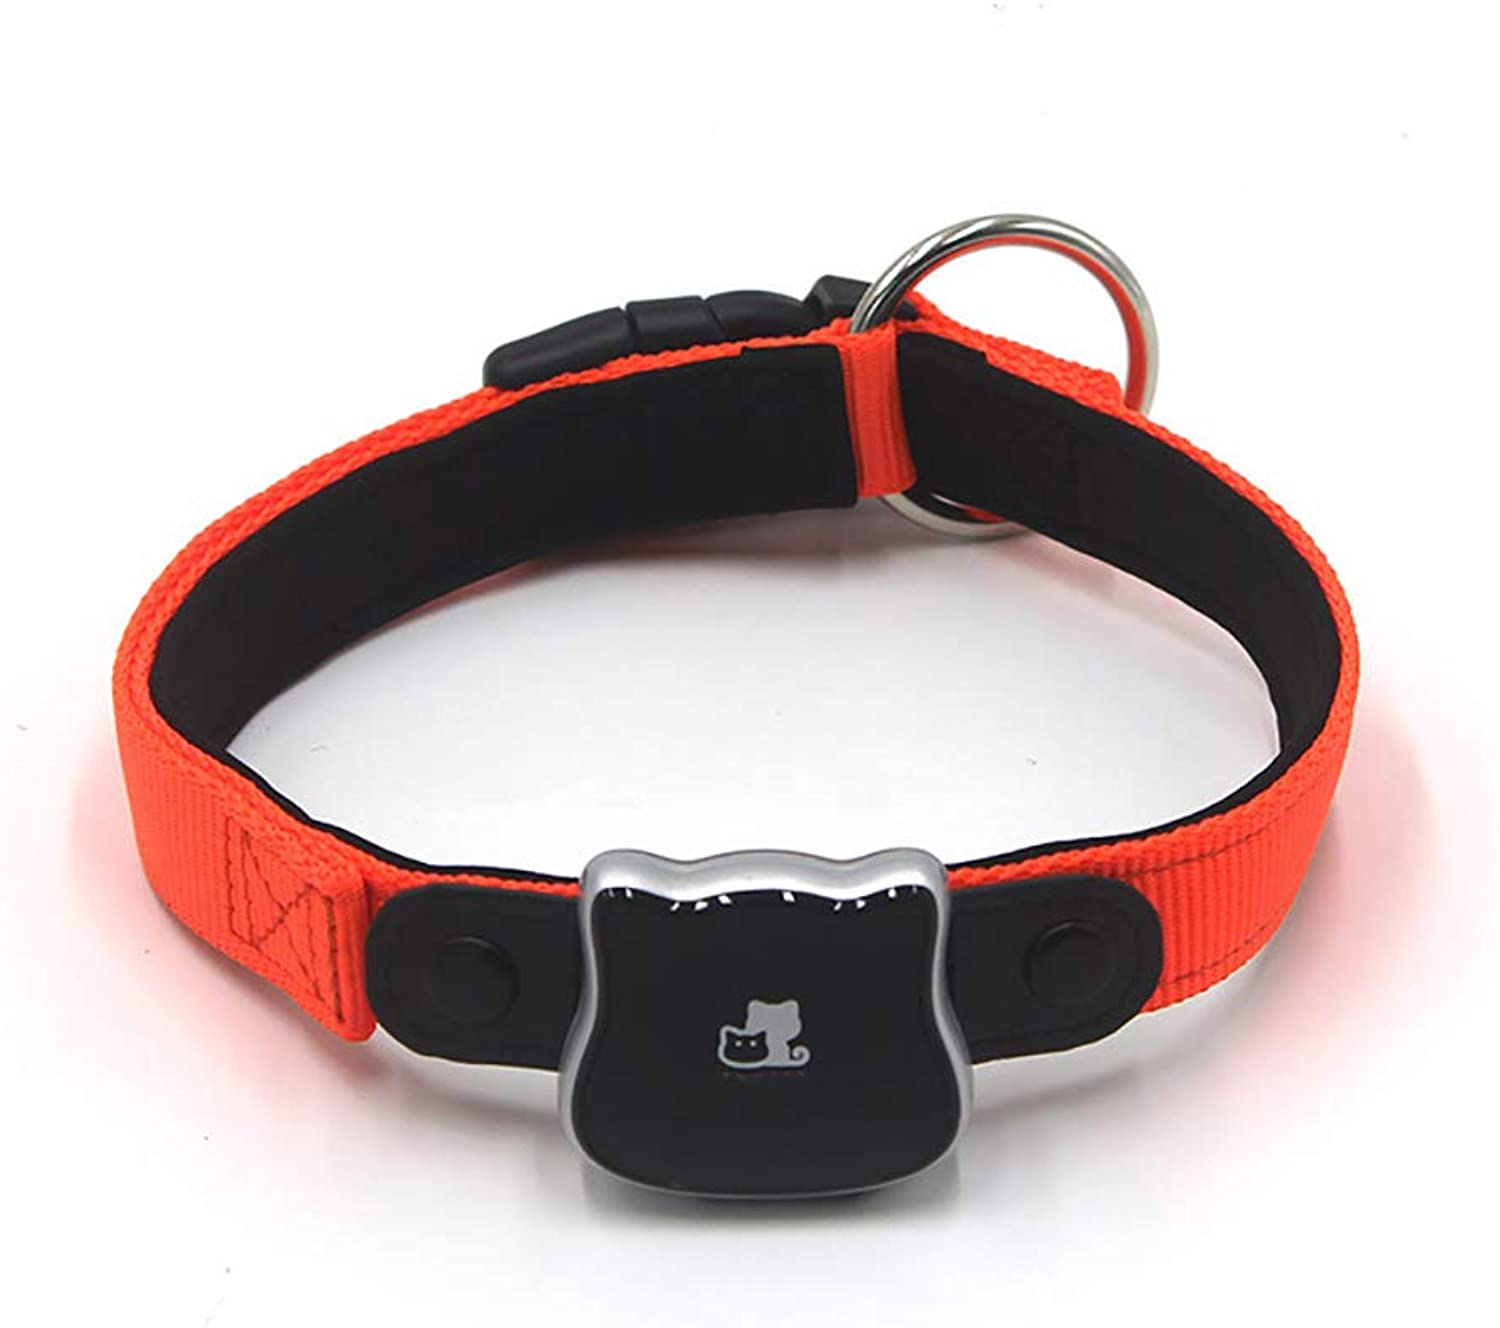 NJSD Mini Dog Locator, GPS+LBS Positioning, Swimming Waterproof Level, 120H Standby, Remote Voice Call, Low Power Reminder, RealTime Tracking, And Positioning